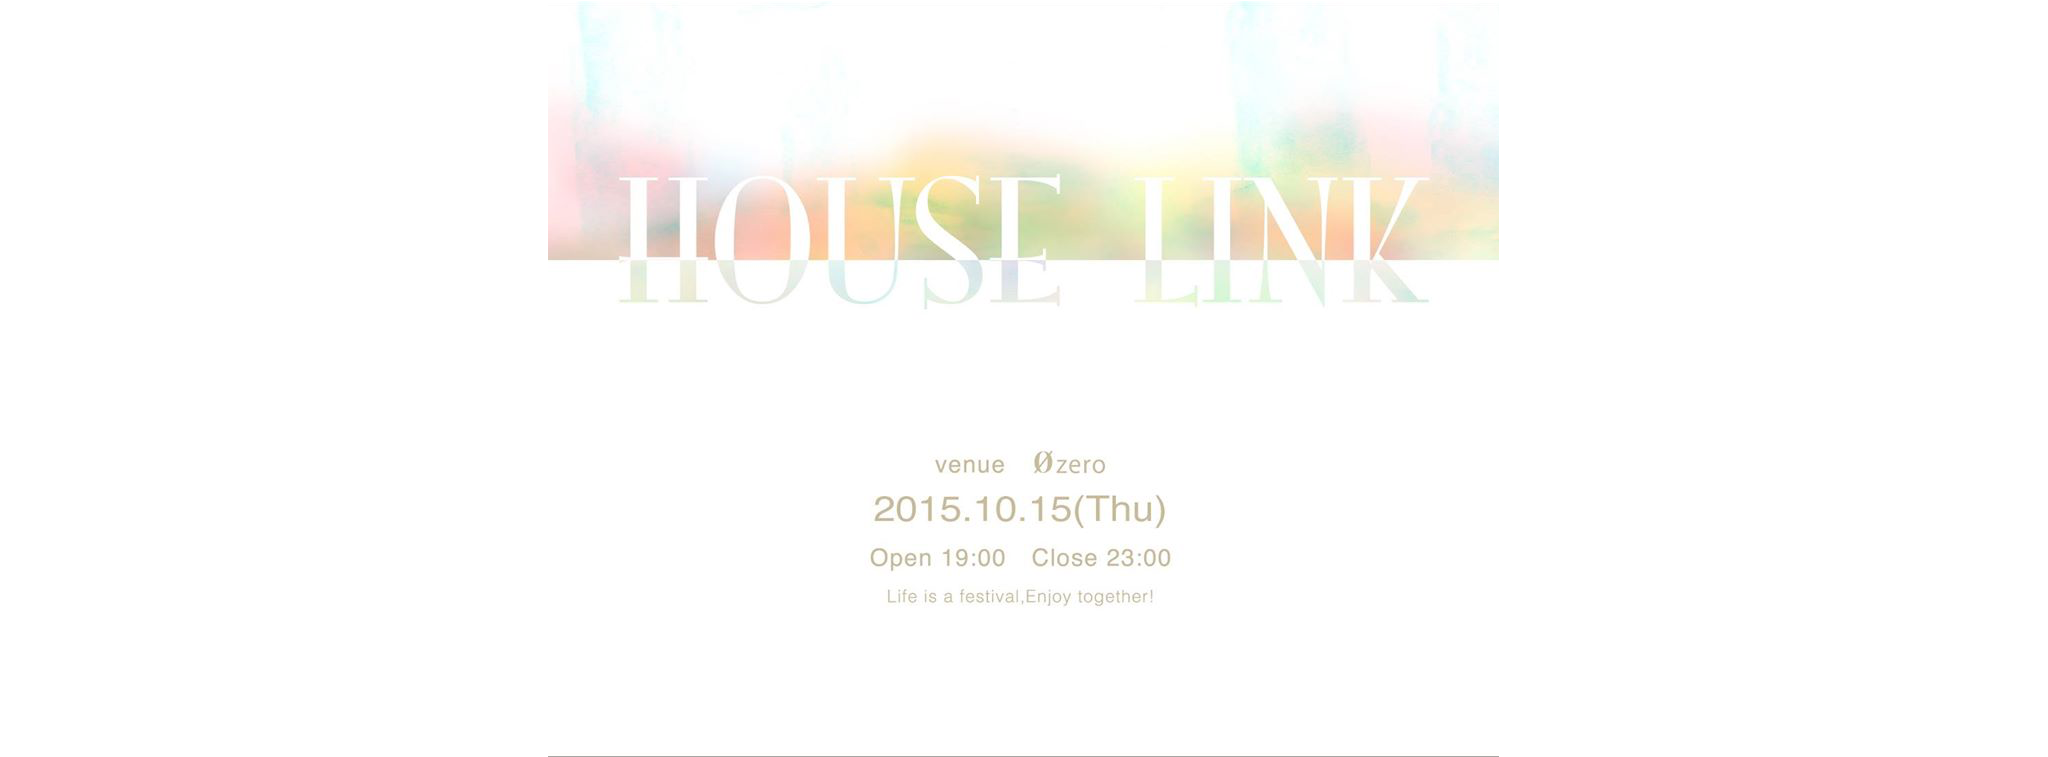 HOUSE LINK